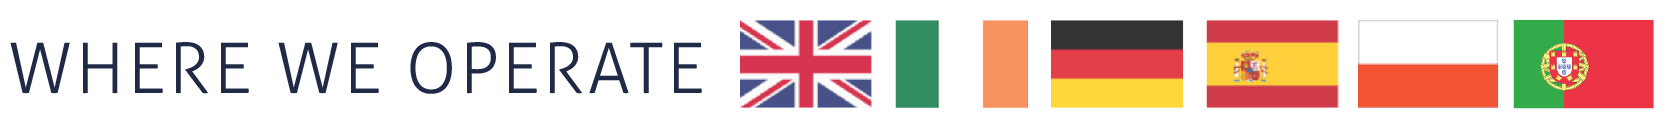 flags (1).png